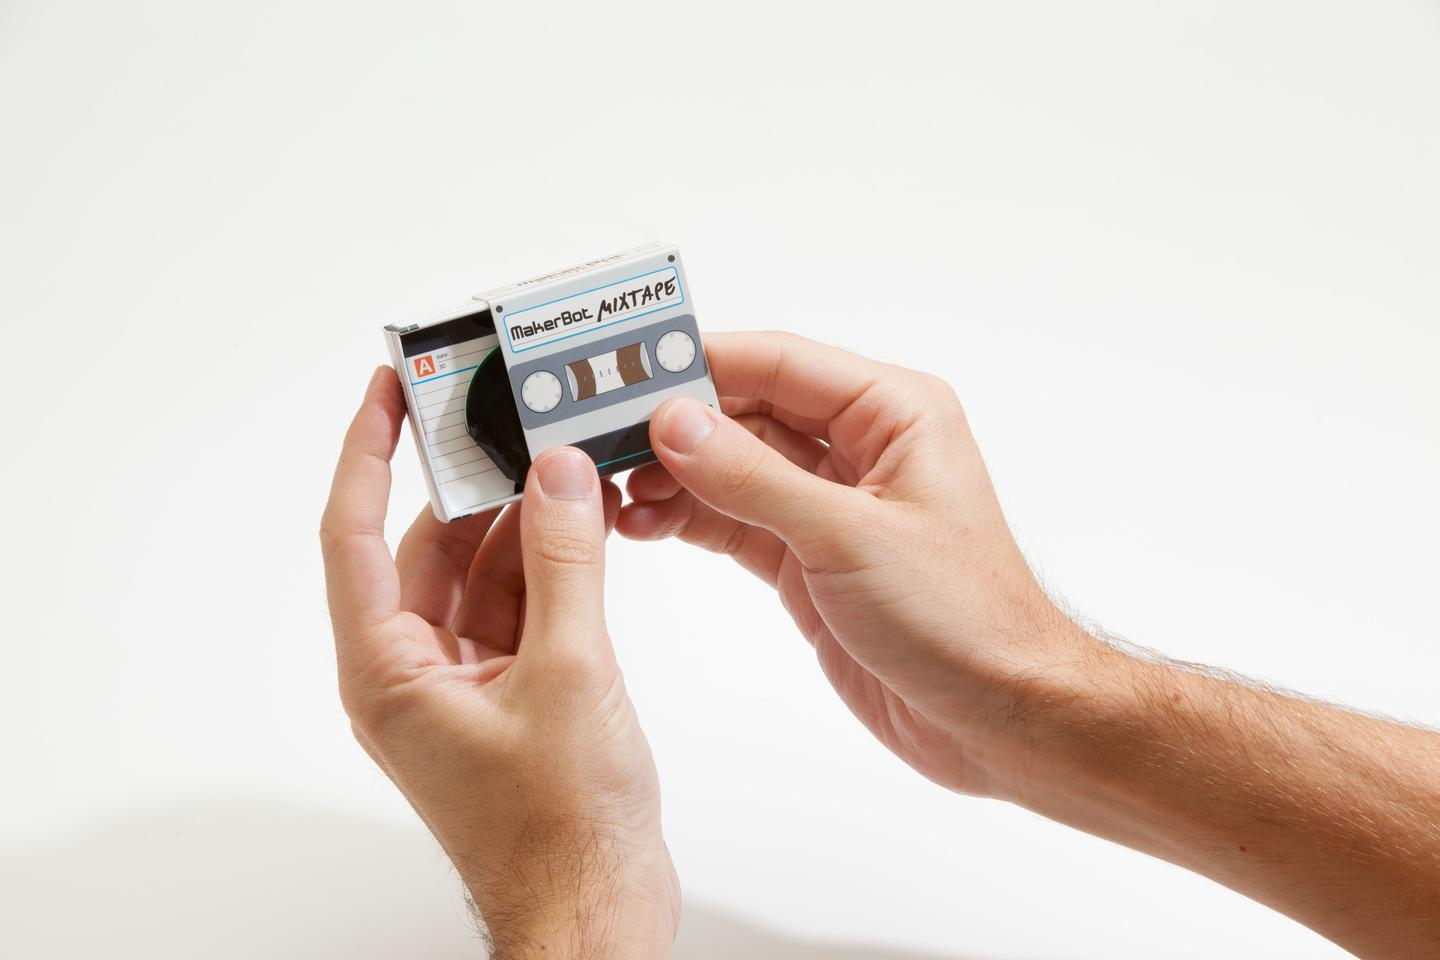 The dictaphone-like tape box contains the electronic components and the USB cable